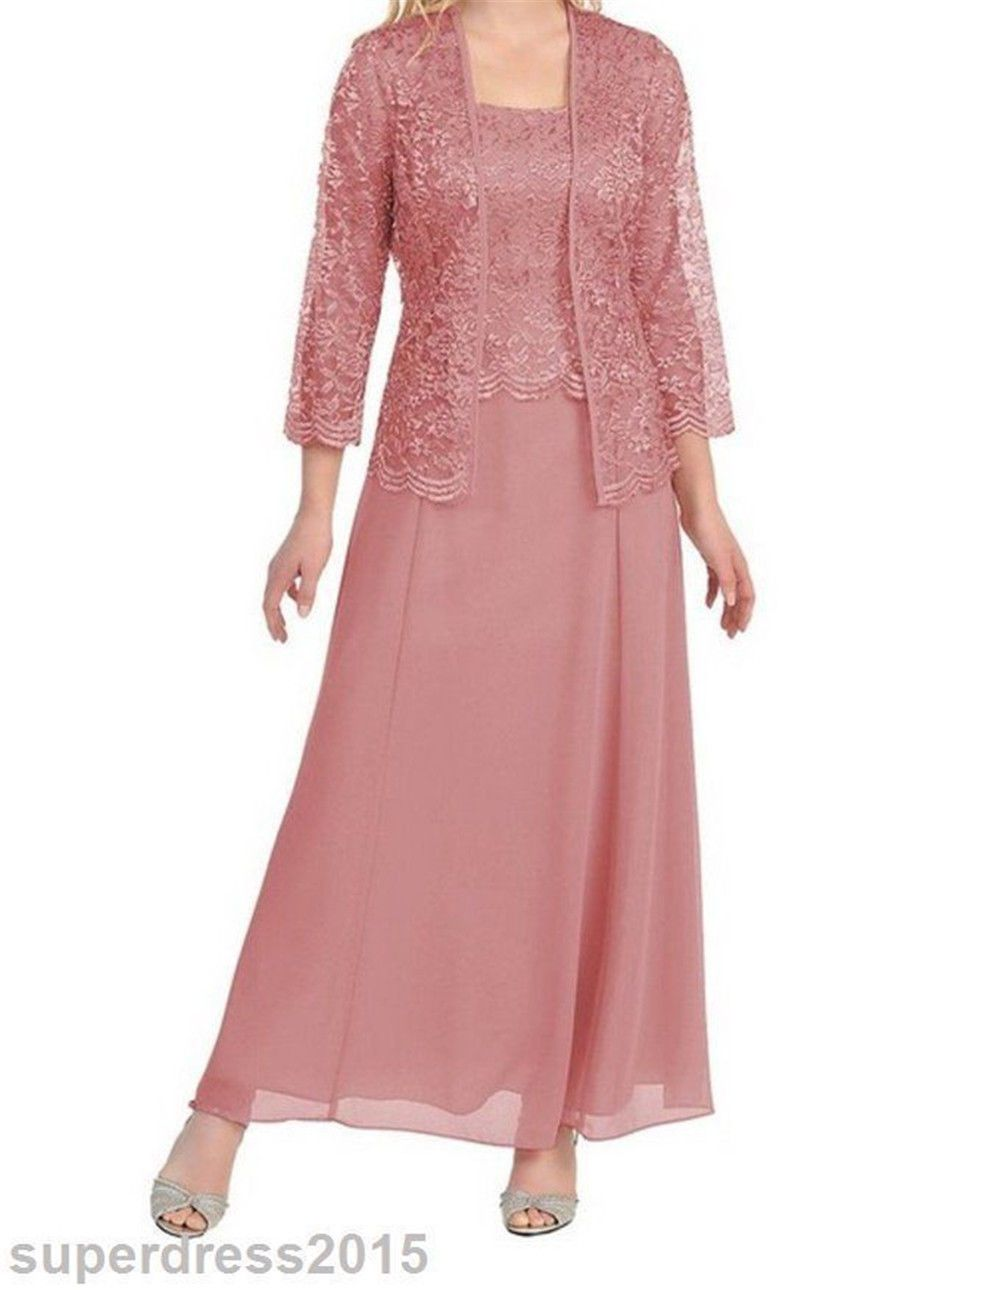 Mother of the groom dresses afternoon wedding  Plus Size Long Lace Mother of The Bride Dress Formal Chiffon Evening